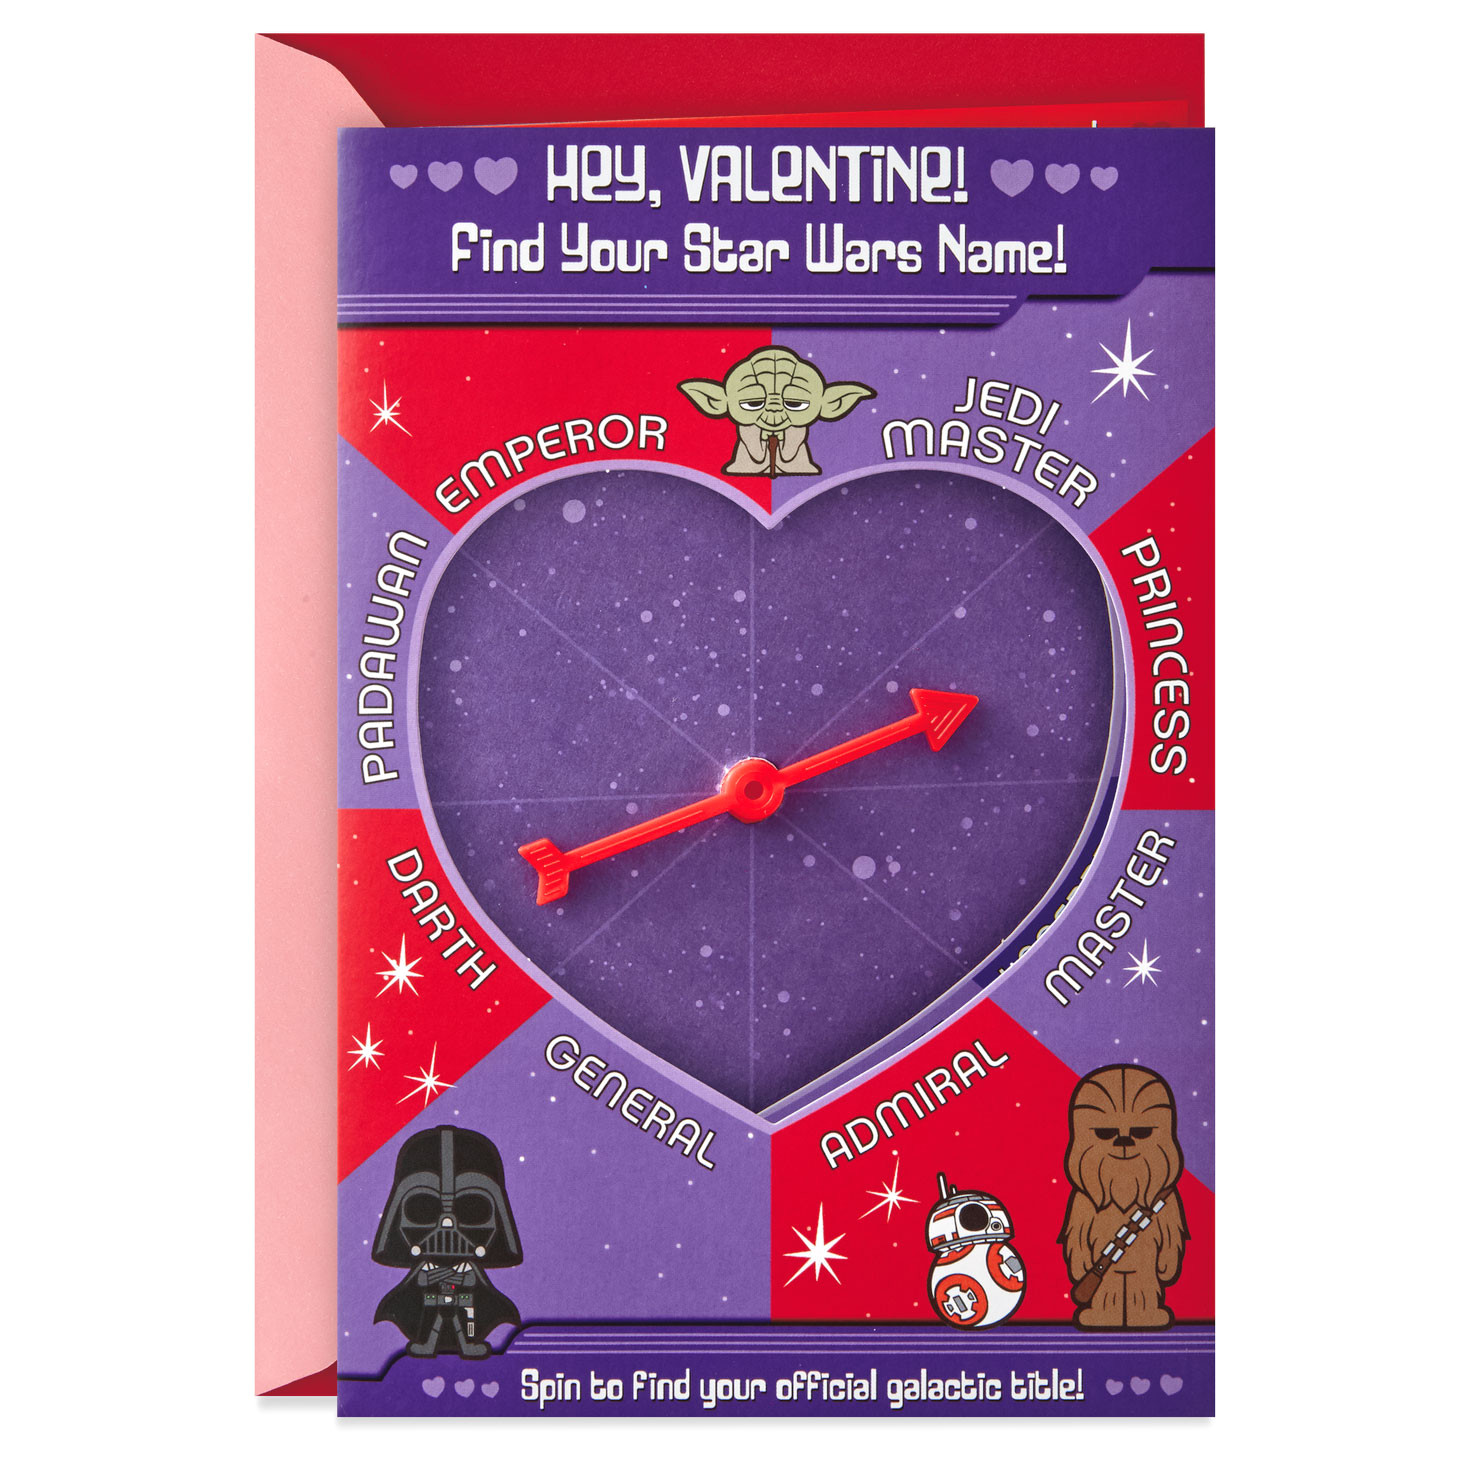 star wars name generator valentines day card with game spinner 499vei3057 01 jpg